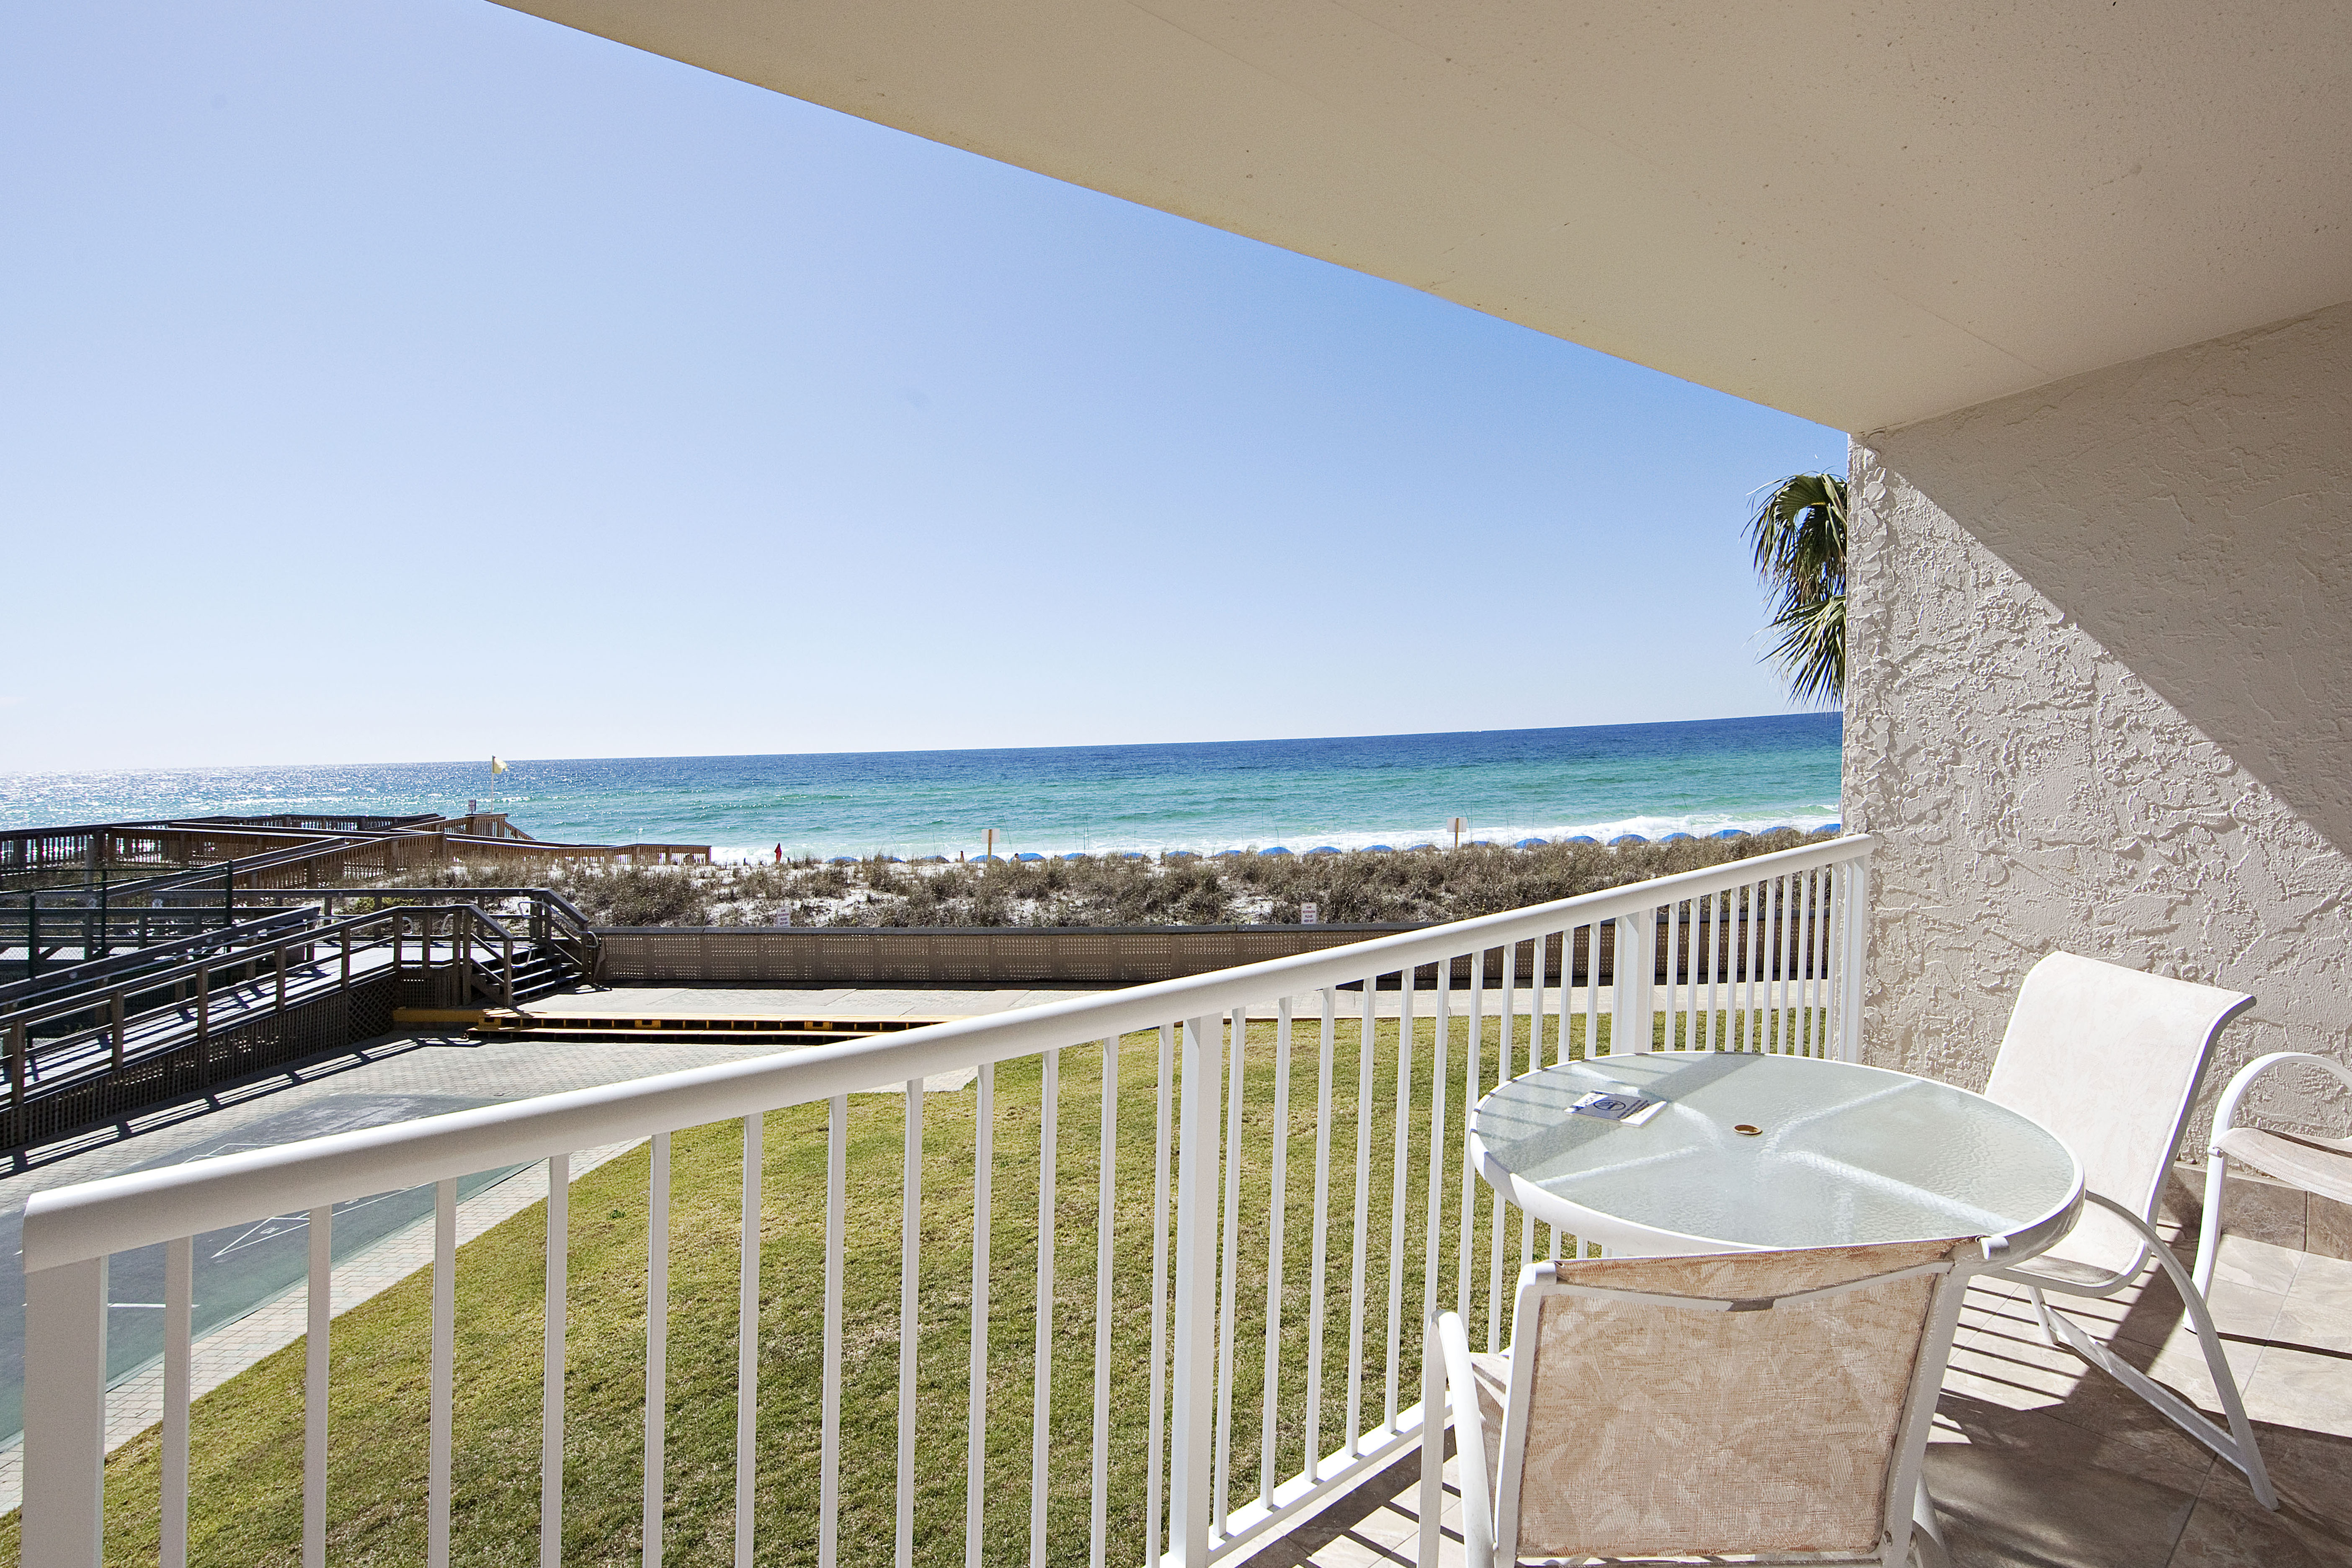 Holiday Surf & Racquet Club 203 Condo rental in Holiday Surf & Racquet Club in Destin Florida - #22